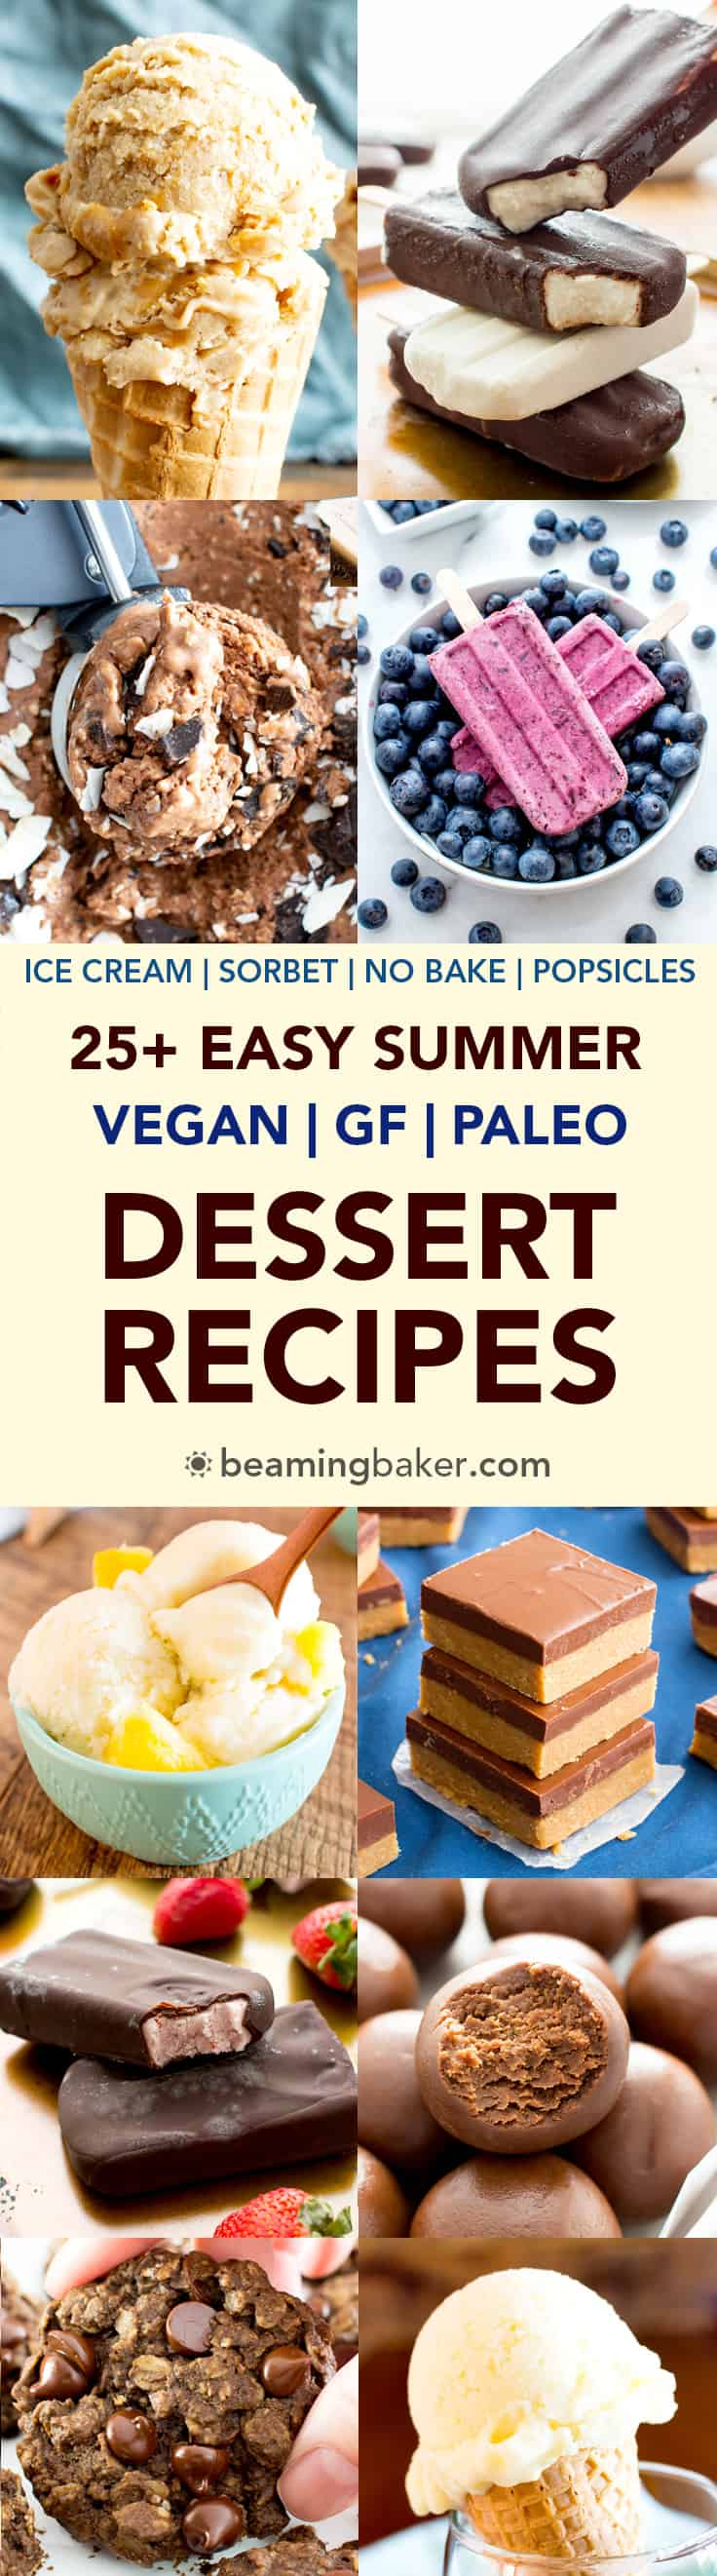 25+ Easy Summer Desserts Recipes (V, GF): a mouthwatering collection of amazingly tasty recipes for the best easy summer desserts! #Vegan #GlutenFree #DairyFree #RefinedSugarFree #Desserts #Cookies | Recipes on BeamingBaker.com